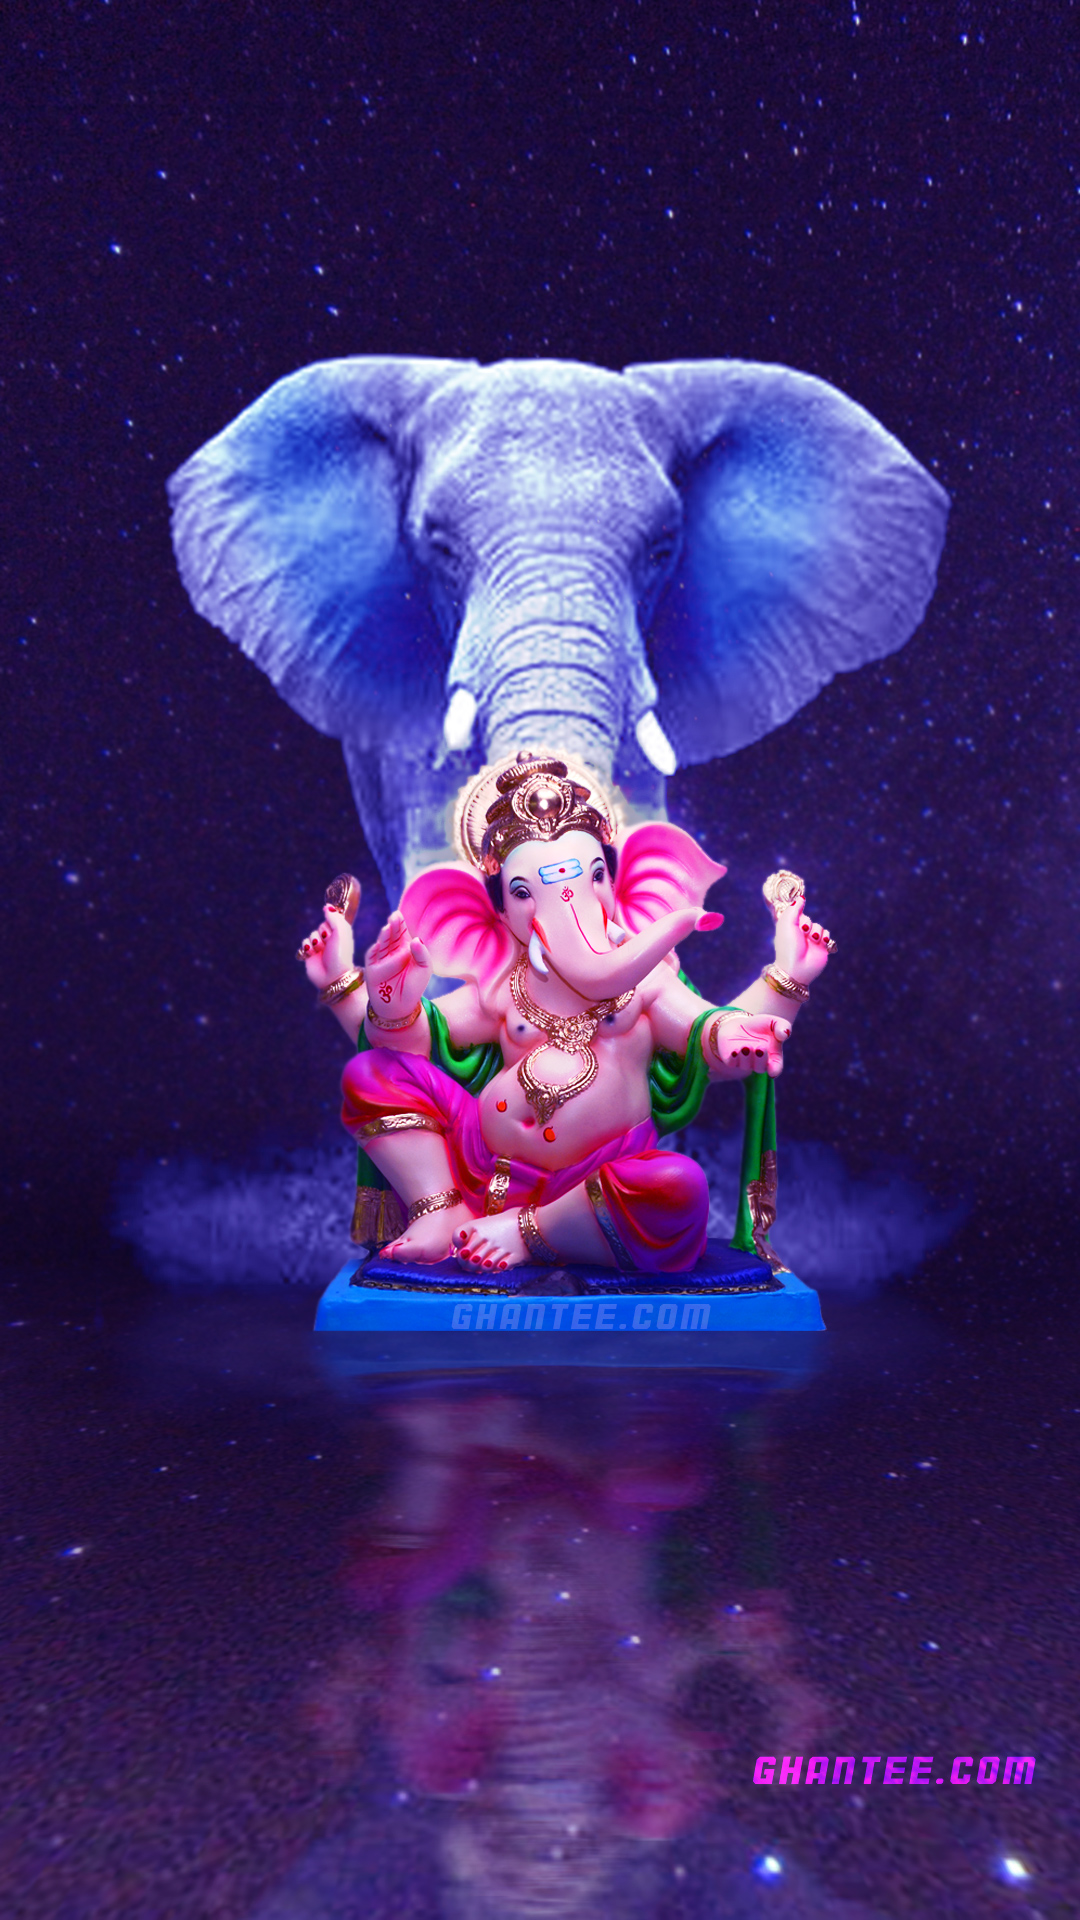 photo of ganesh ji in full hd resolution